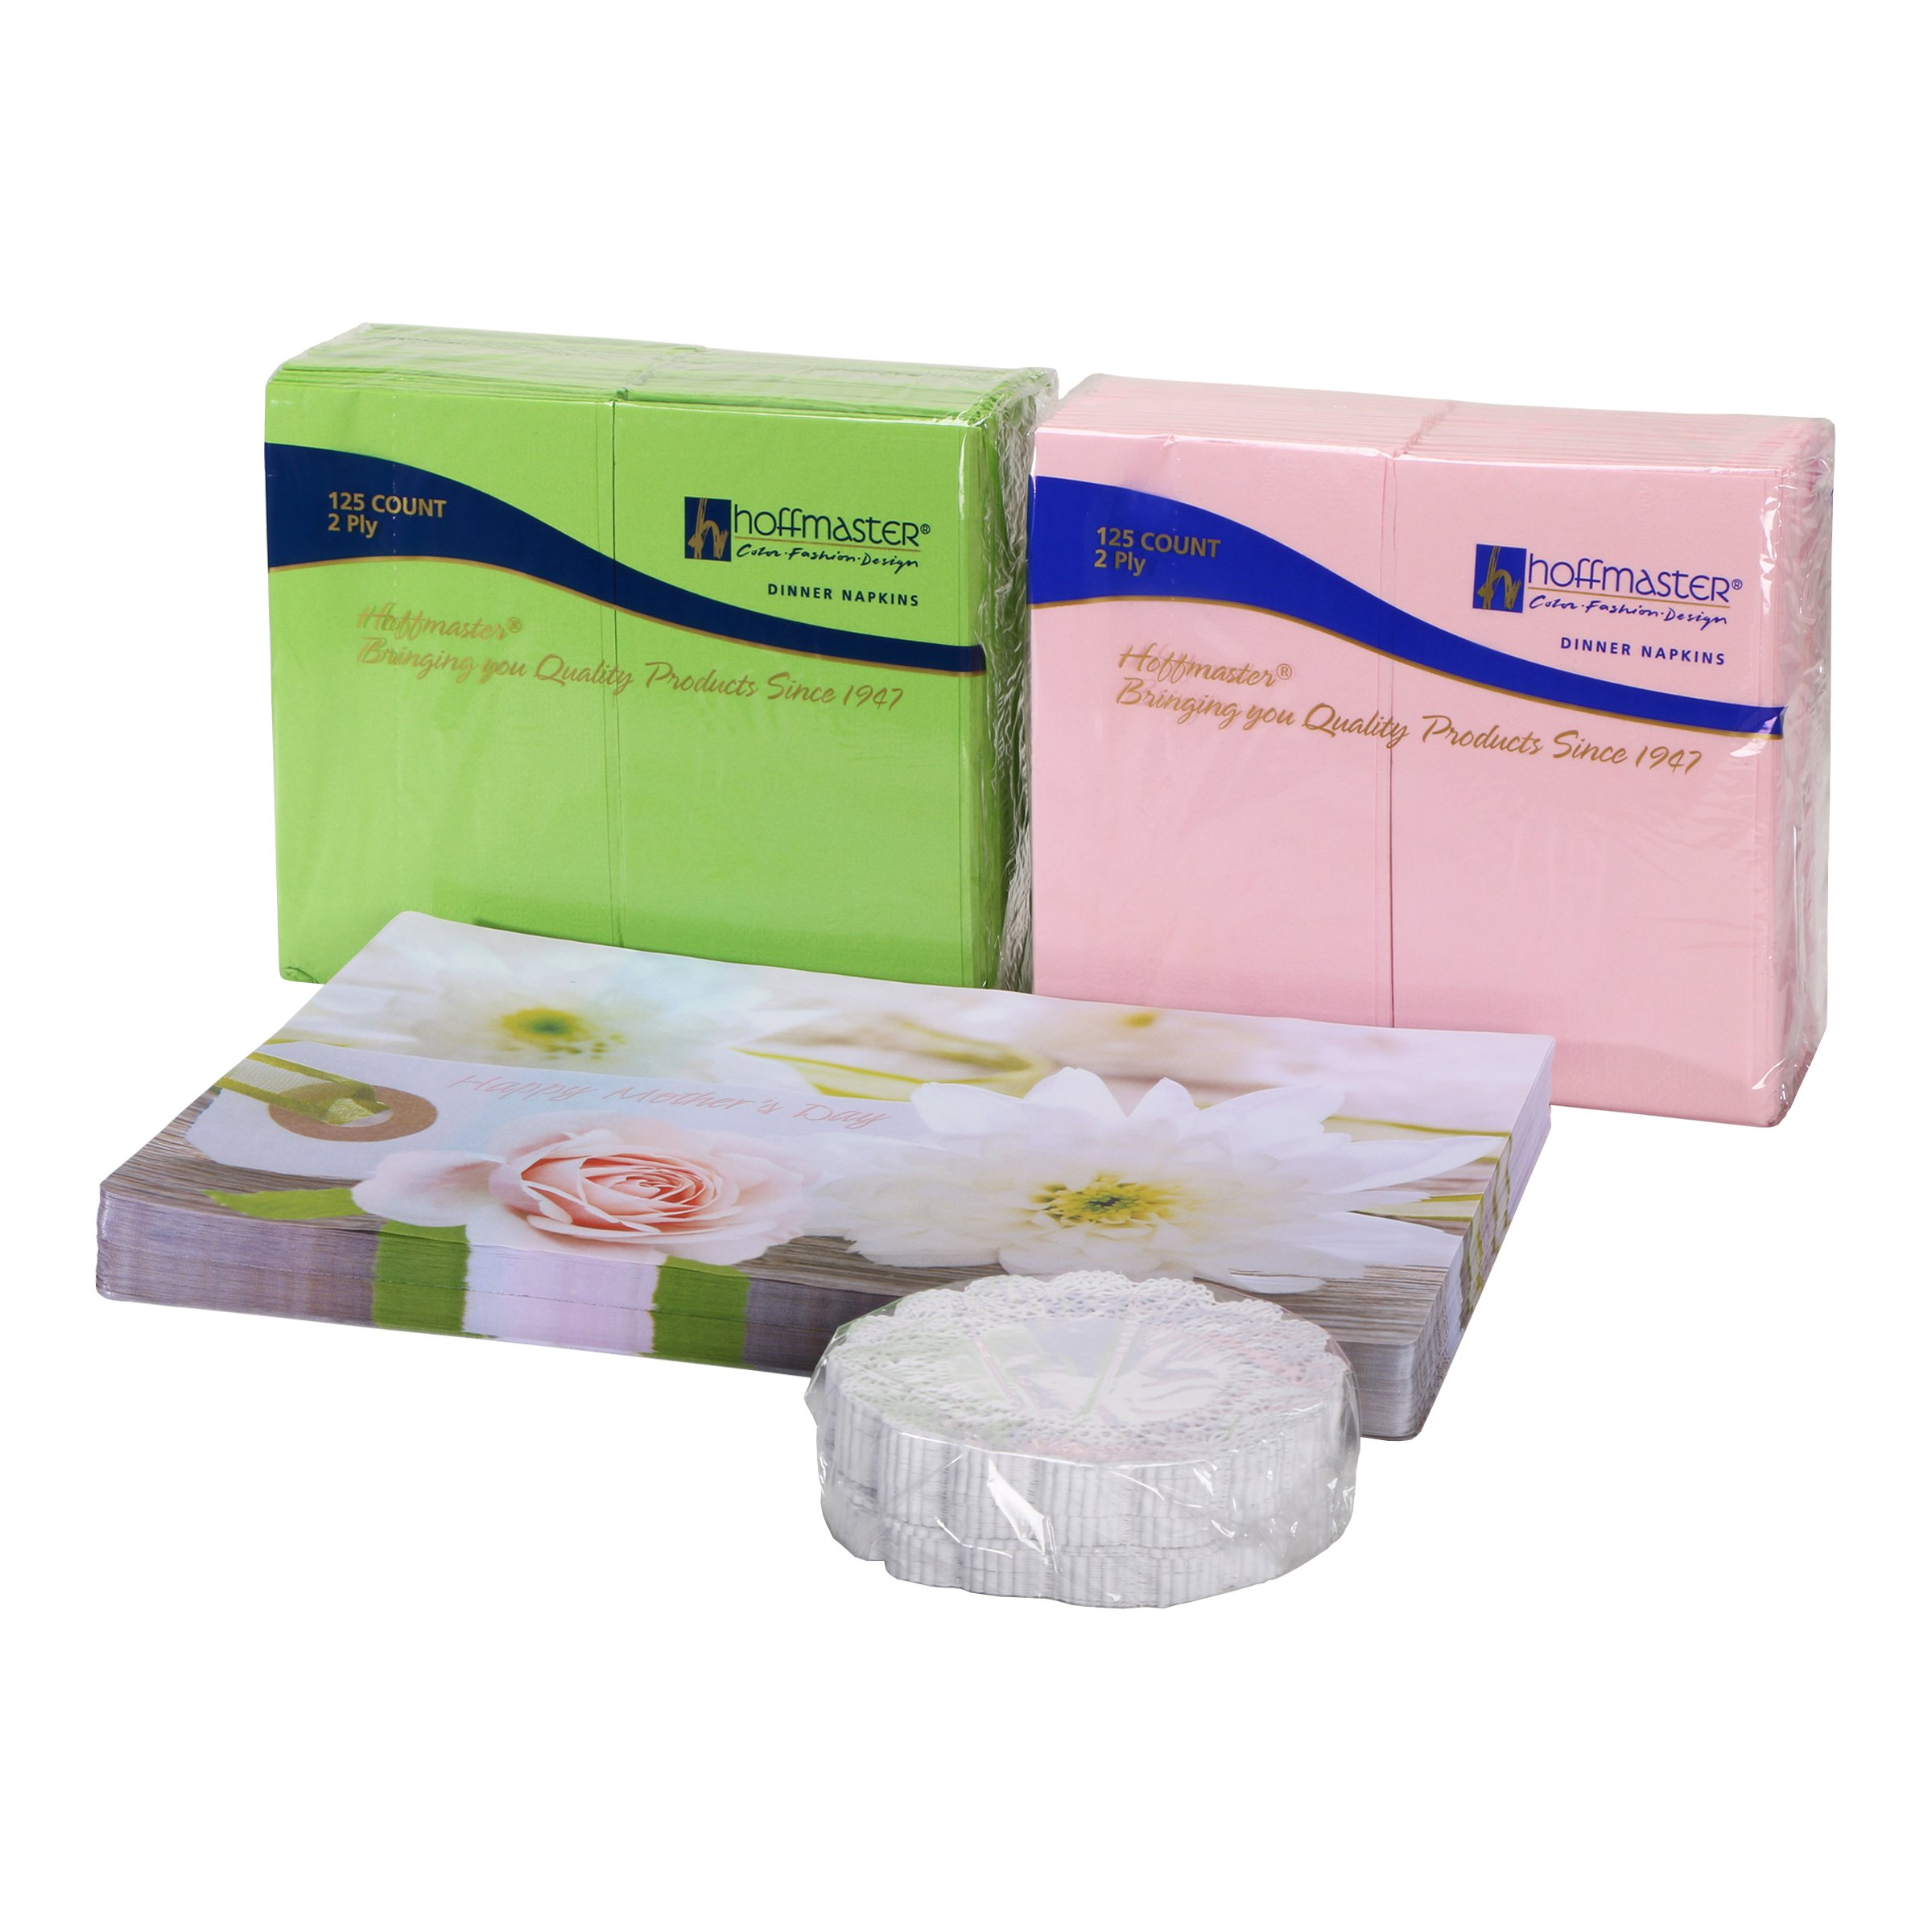 Hoffmaster 856779 Mothers Day Combo Packs, Placemats, Coordinating Decorator Napkins with Bonus 5'' Lace Doilies All in A Dispensing Box, 9.75'' Length x 14'' Width (Pack of 750) by Hoffmaster (Image #2)